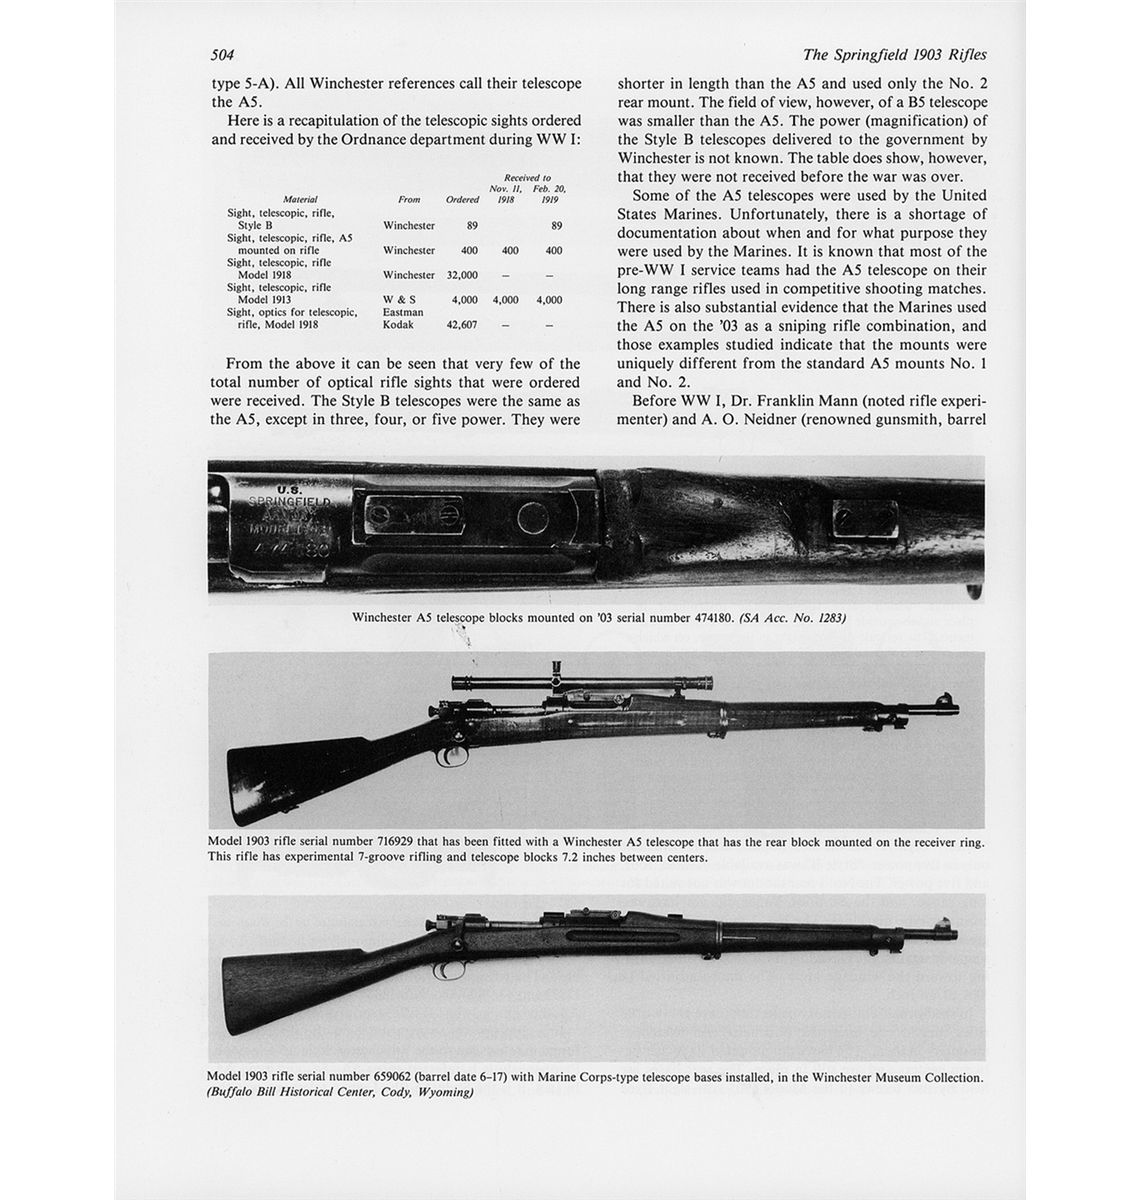 Extraordinary Documented Experimental Springfield Model 1903 Sniper Rifle  with Winchester A5 Scope